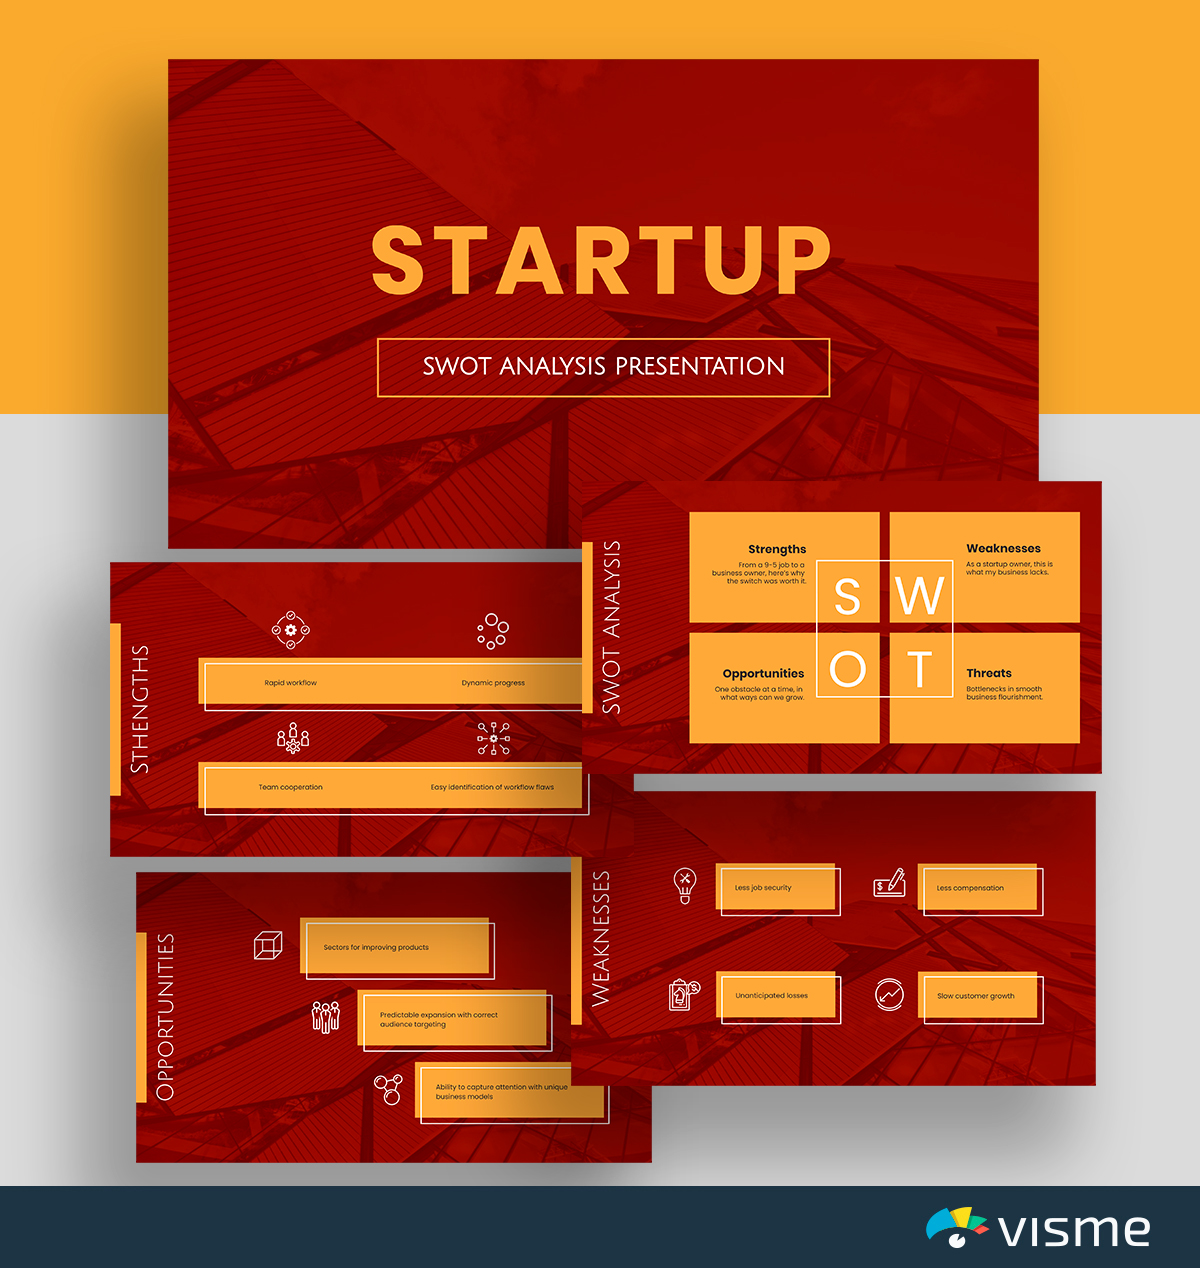 A red and orange startup SWOT analysis template available in Visme.